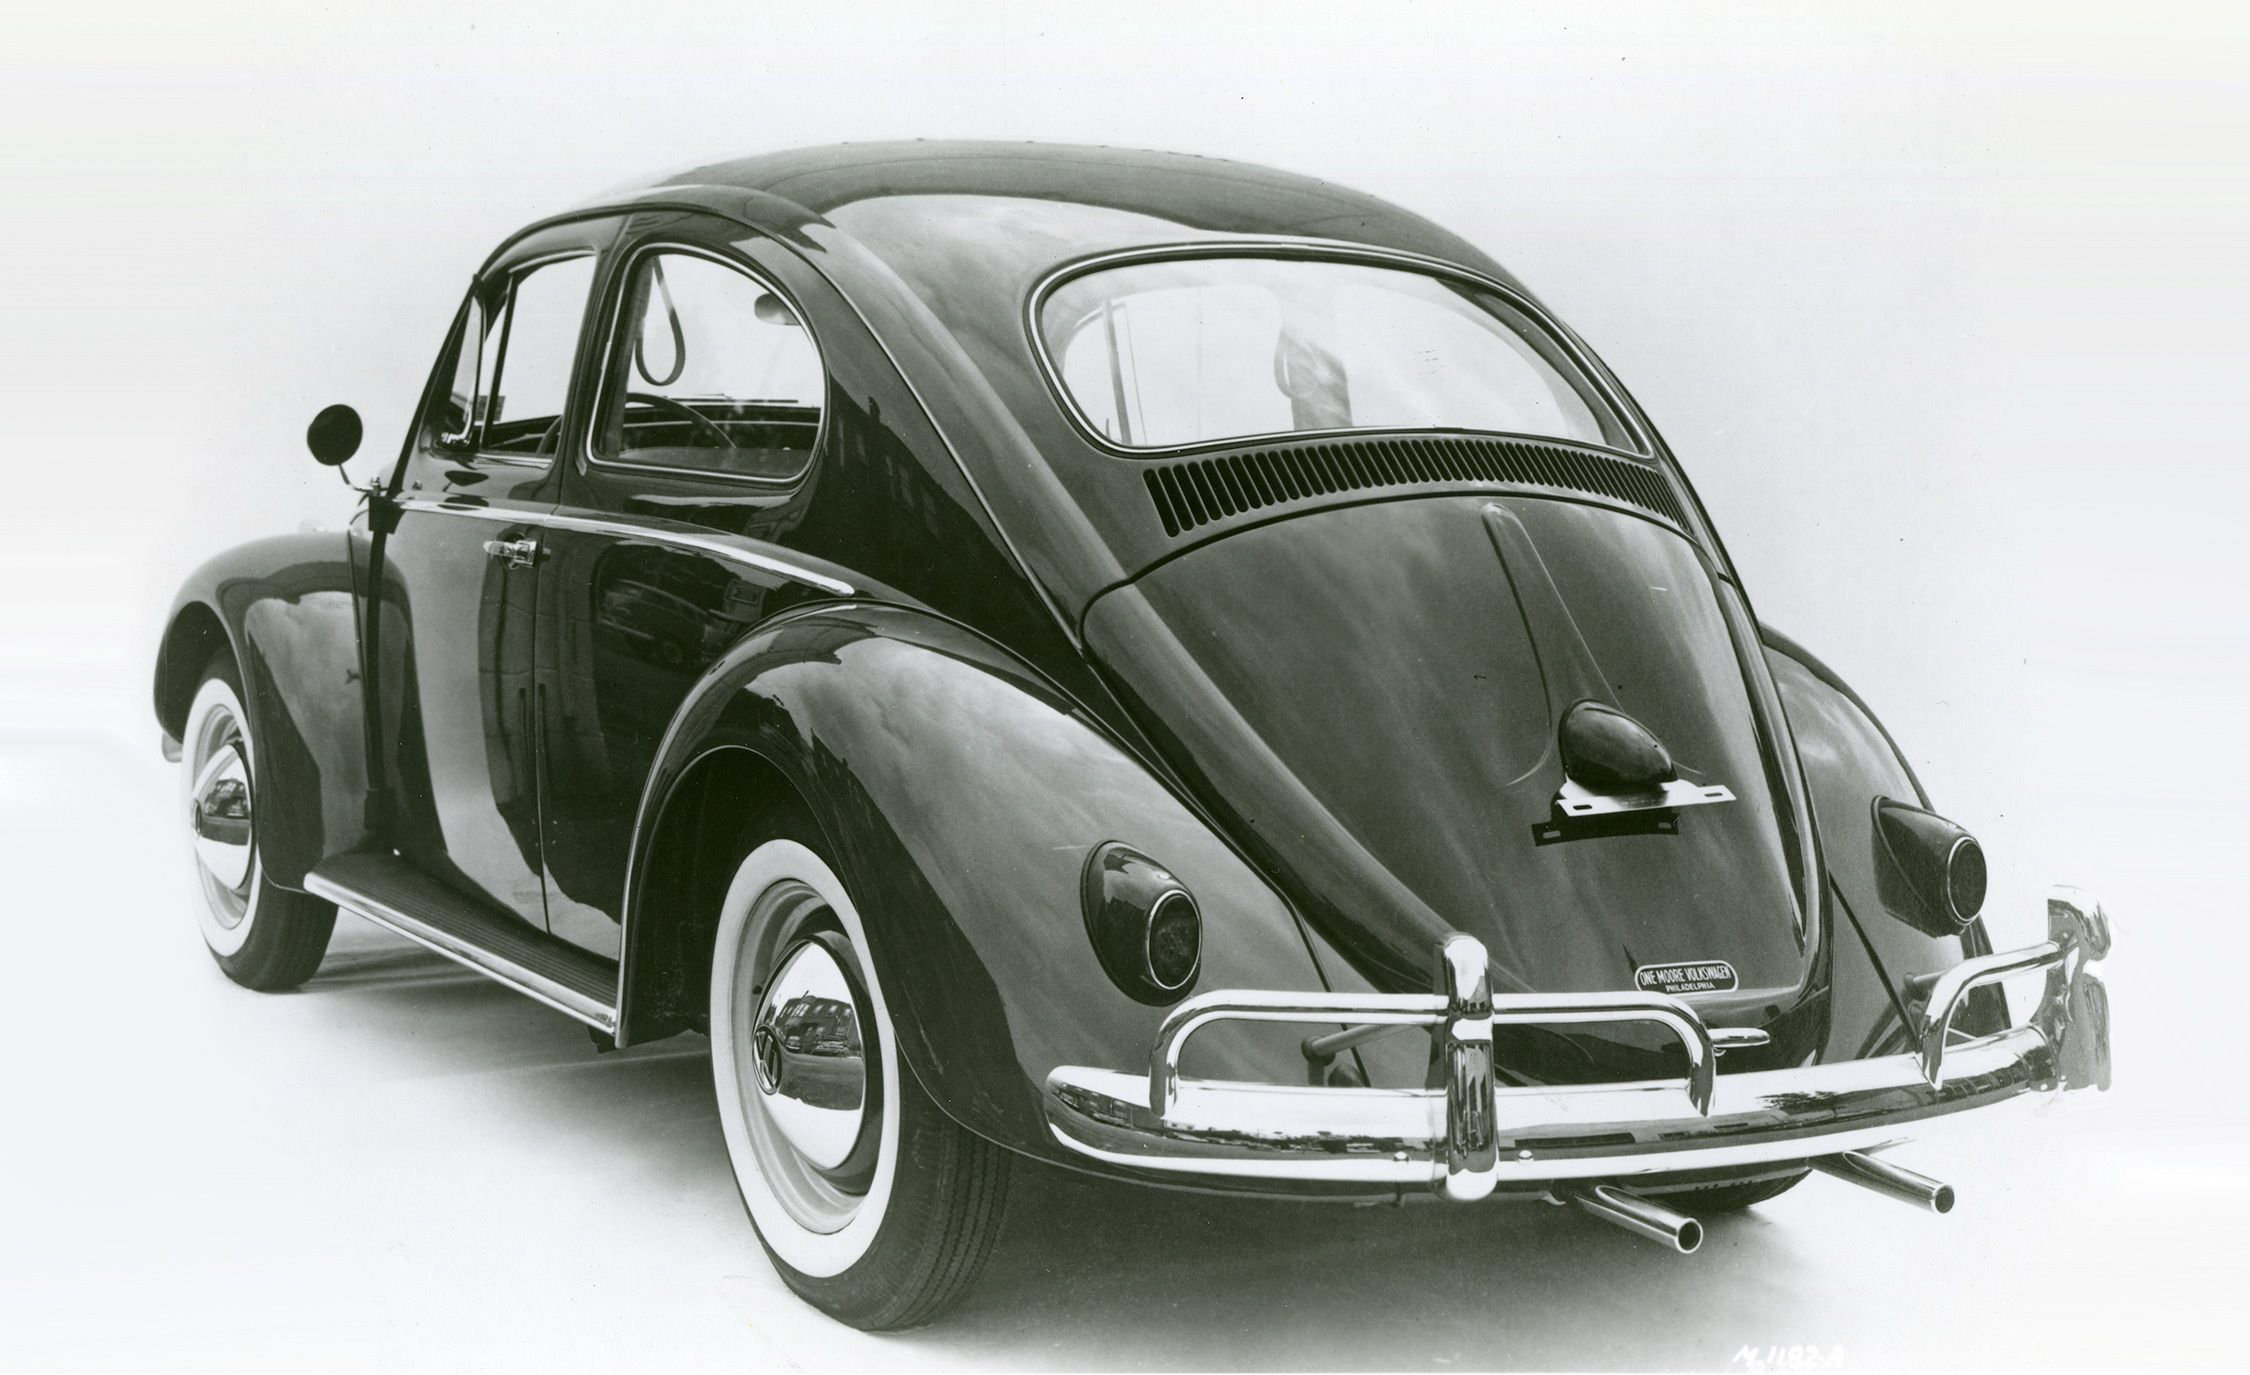 medium resolution of volkswagen beetle models by year old and classic vw bugs stick shift electrical circuit diagram vw beetle early model stick